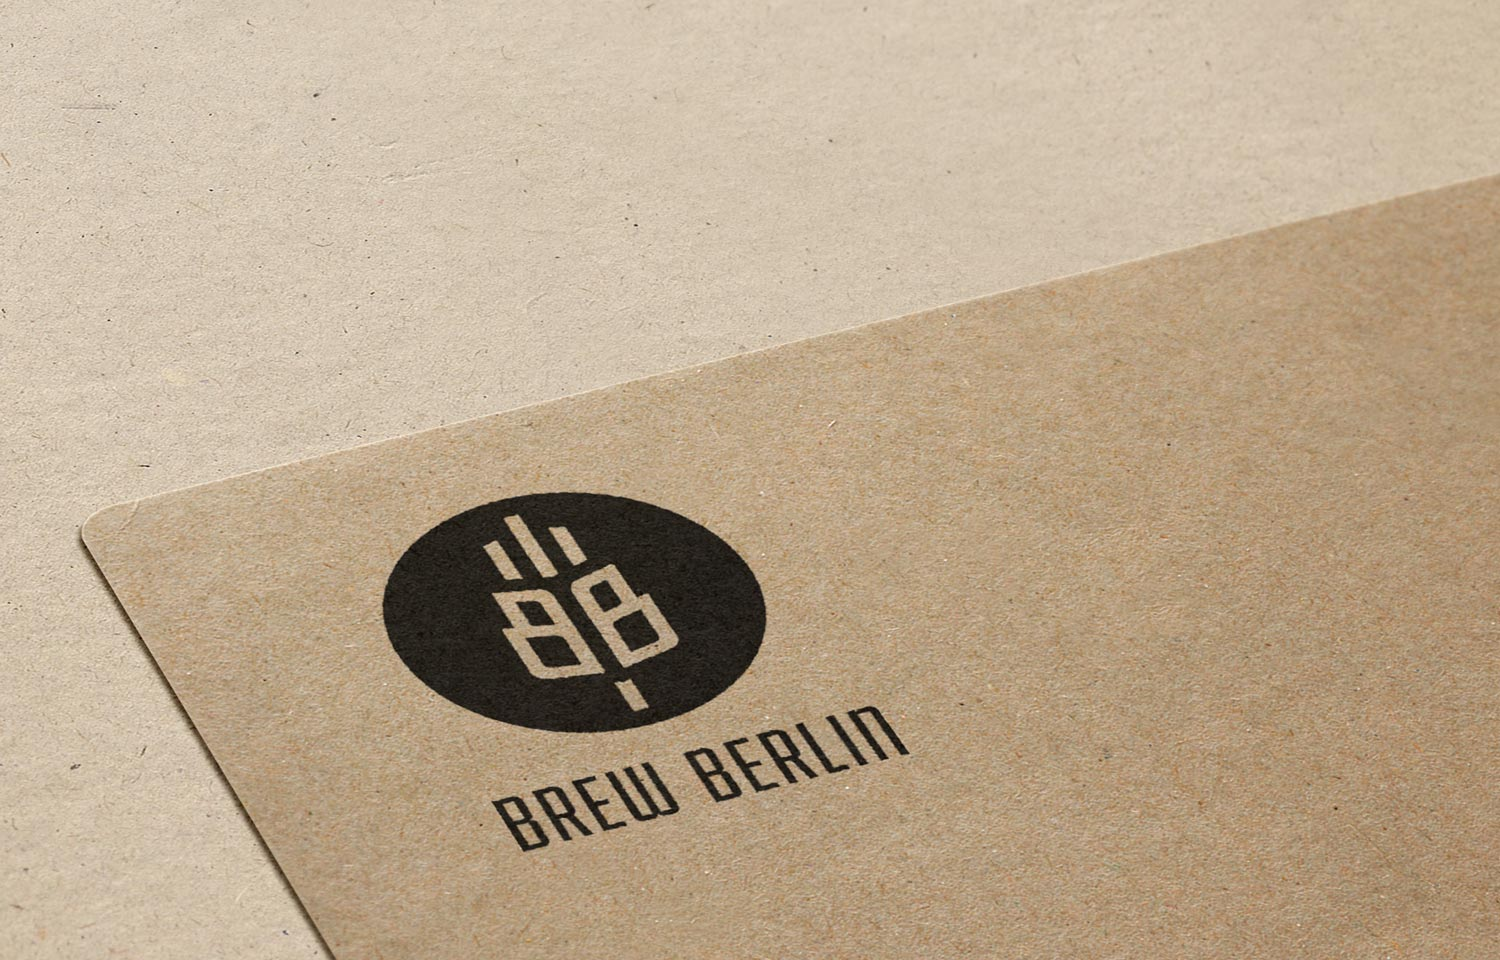 Logodesign, Corporate Design, Brew Berlin